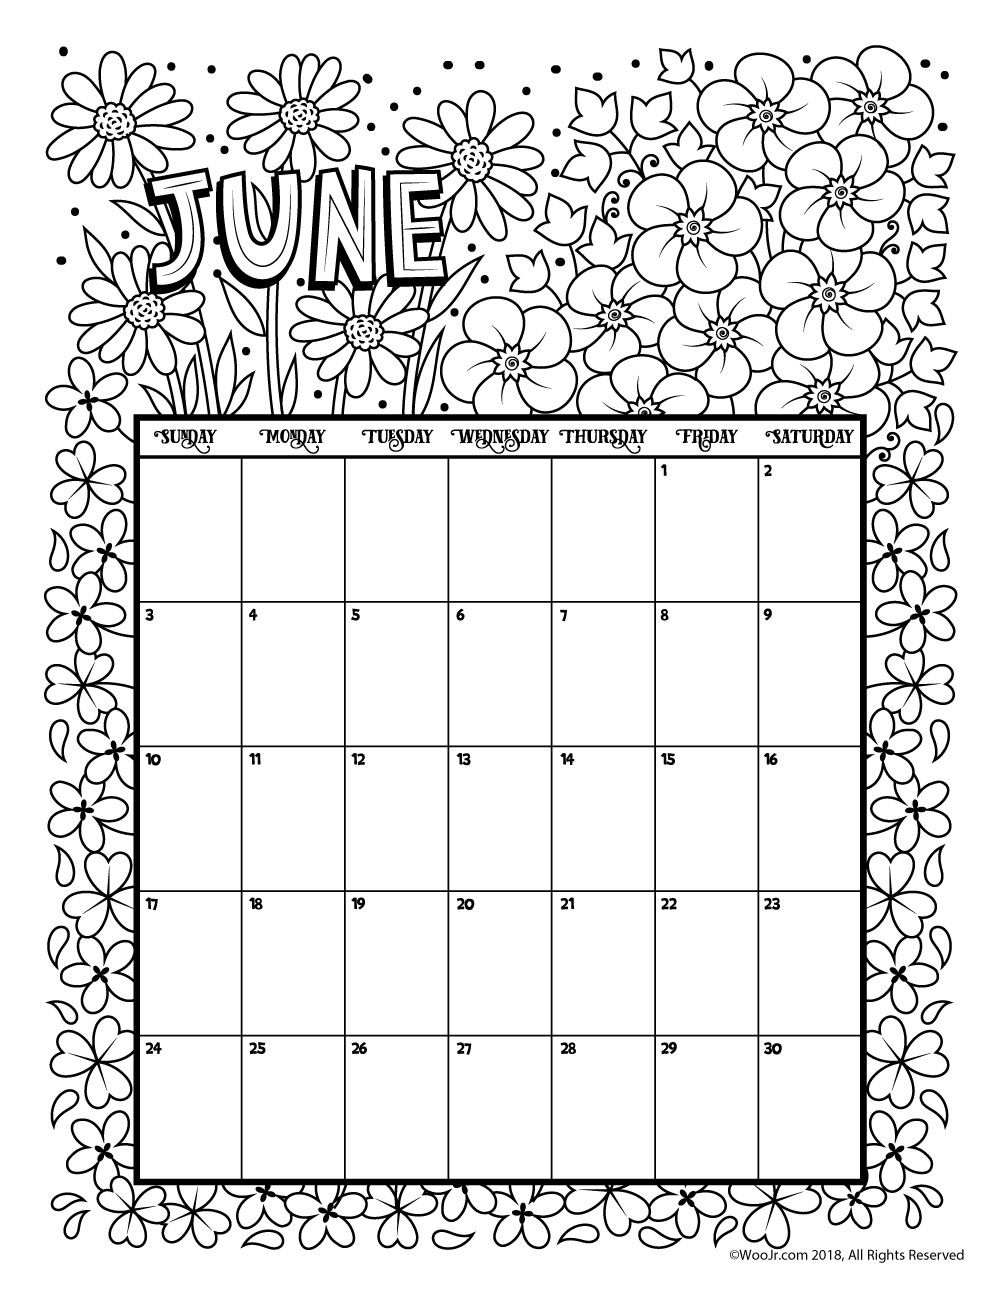 June 2018 Coloring Calendar Page | June, Kid activities and Free ...